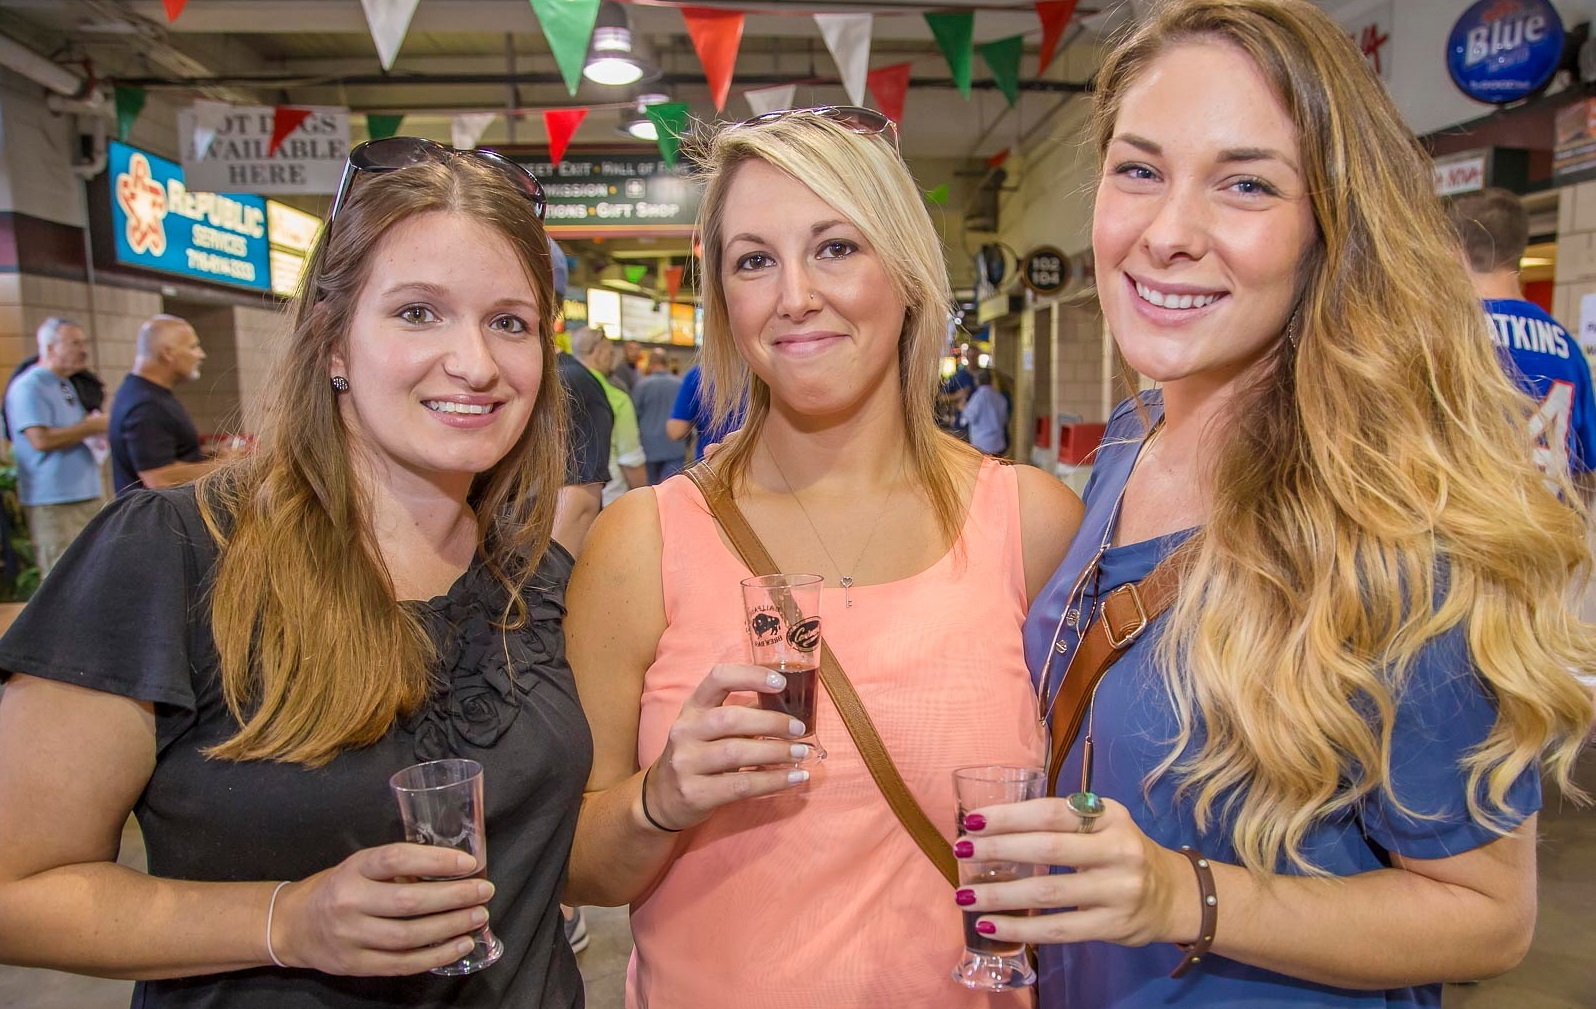 The Ballpark Brew Bash is one of many events happening during Buffalo Beer Week. (Don Nieman/Special to The News)